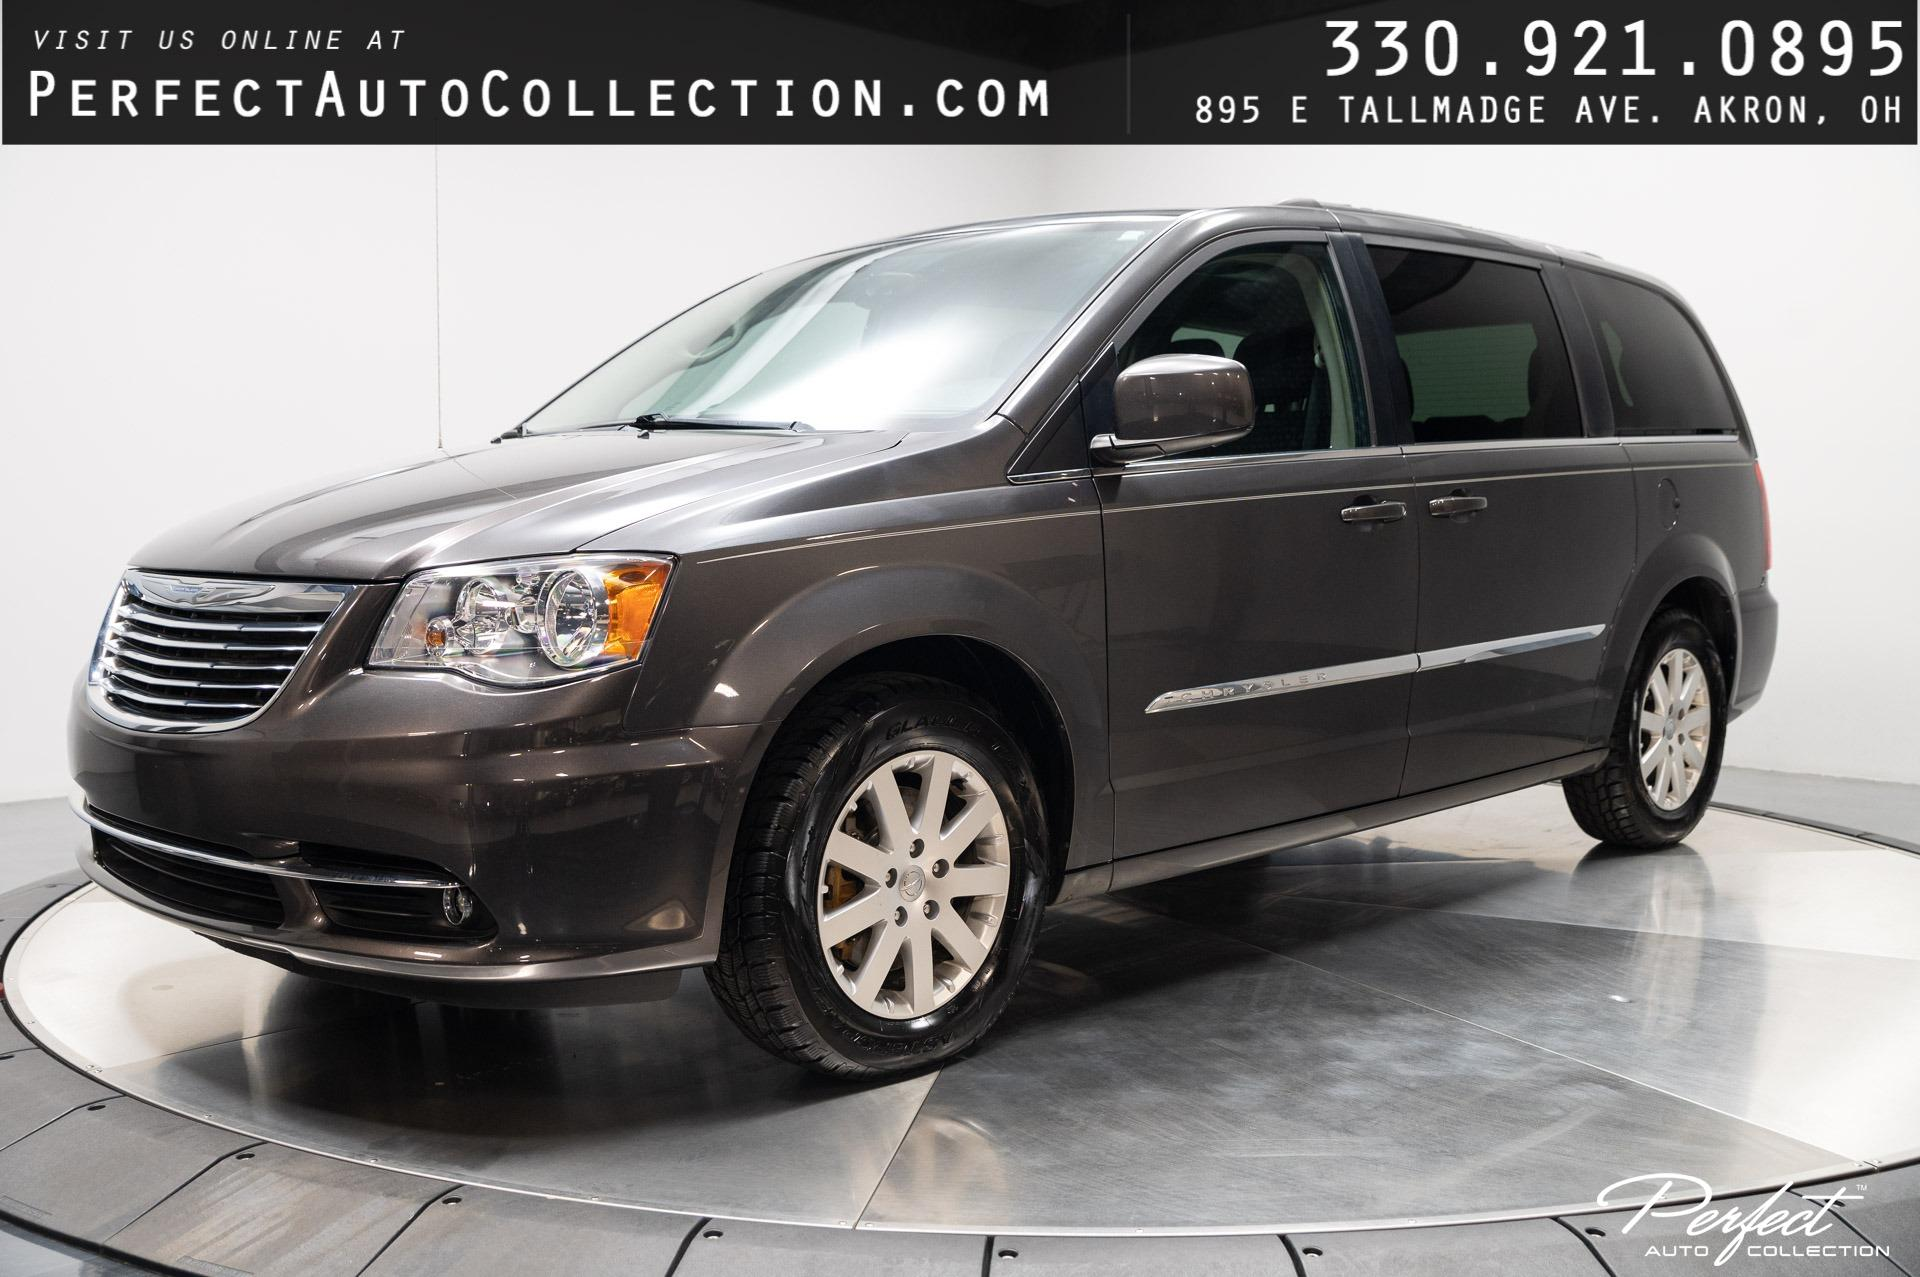 Used 2016 Chrysler Town and Country Touring for sale $11,995 at Perfect Auto Collection in Akron OH 44310 1